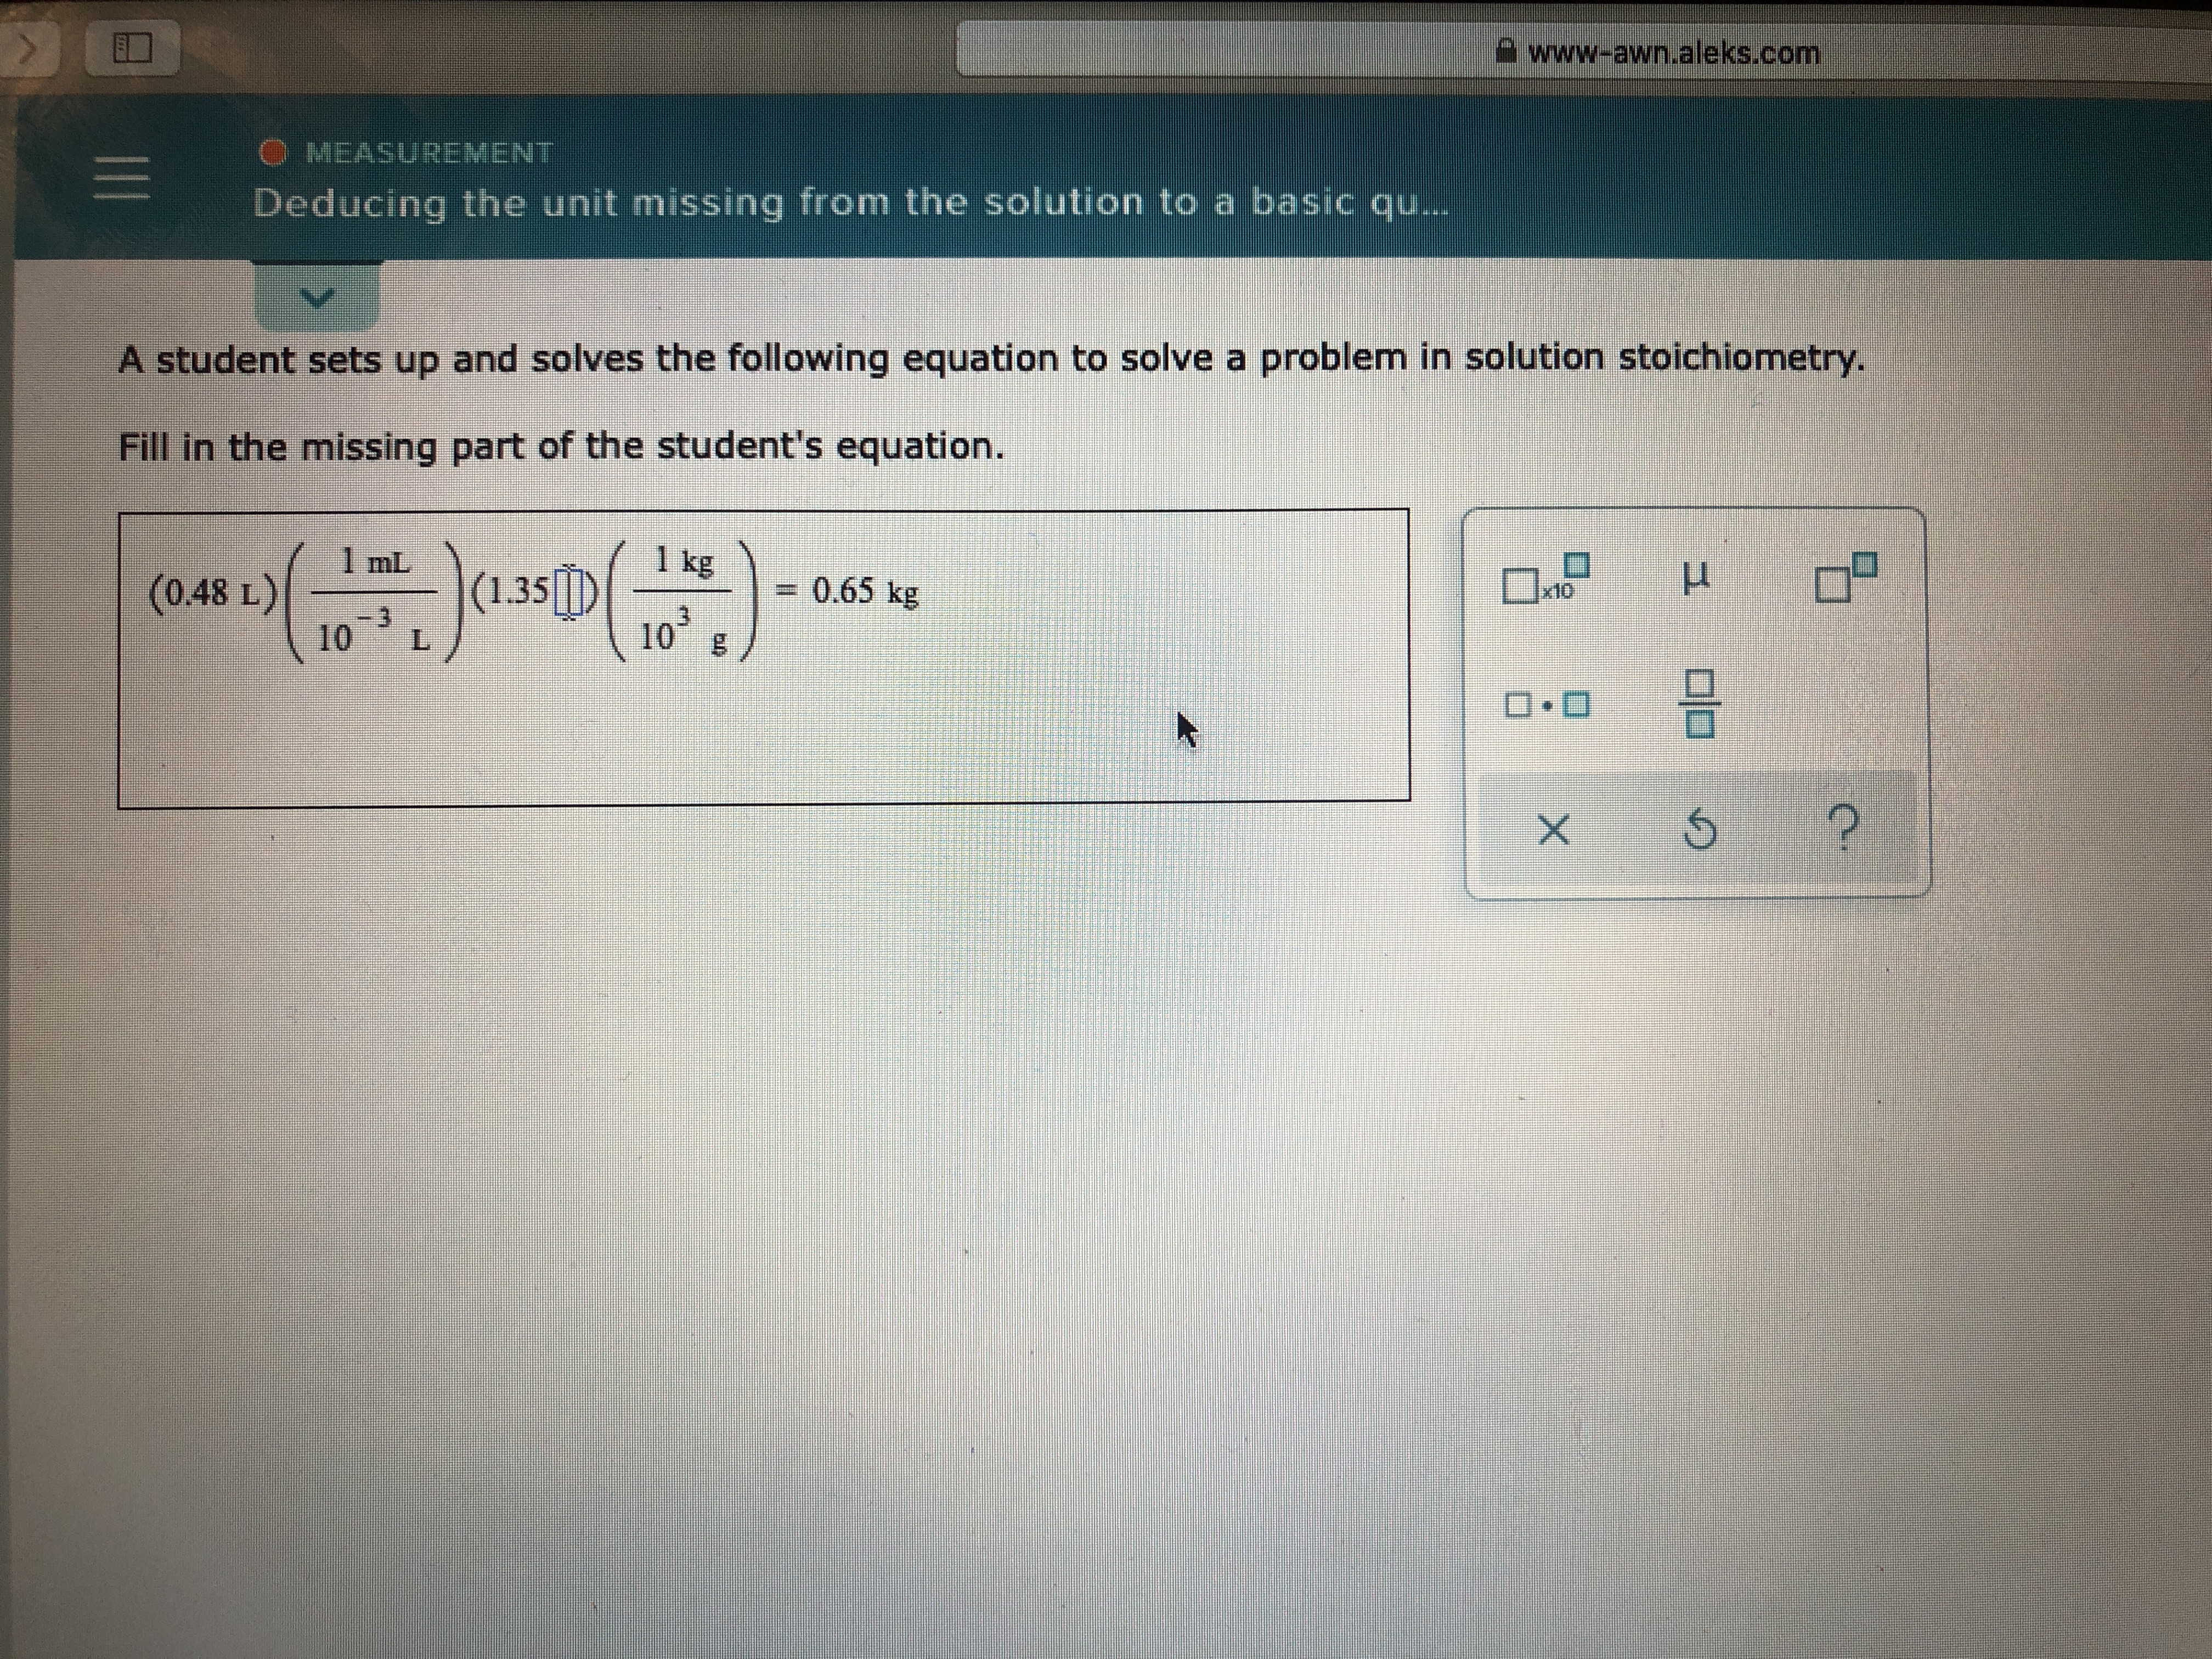 www-awn.aleks.com O MEASUREMENT Deducing the unit missing from the solution to a basic qu.. A student sets up and solves the following equation to solve a problem in solution stoichiometry Fill in the missing part of the student's equation. 1 kg (135D 103 1 mL 0.65 kg (0.48 L) 3 10 ? 1 X